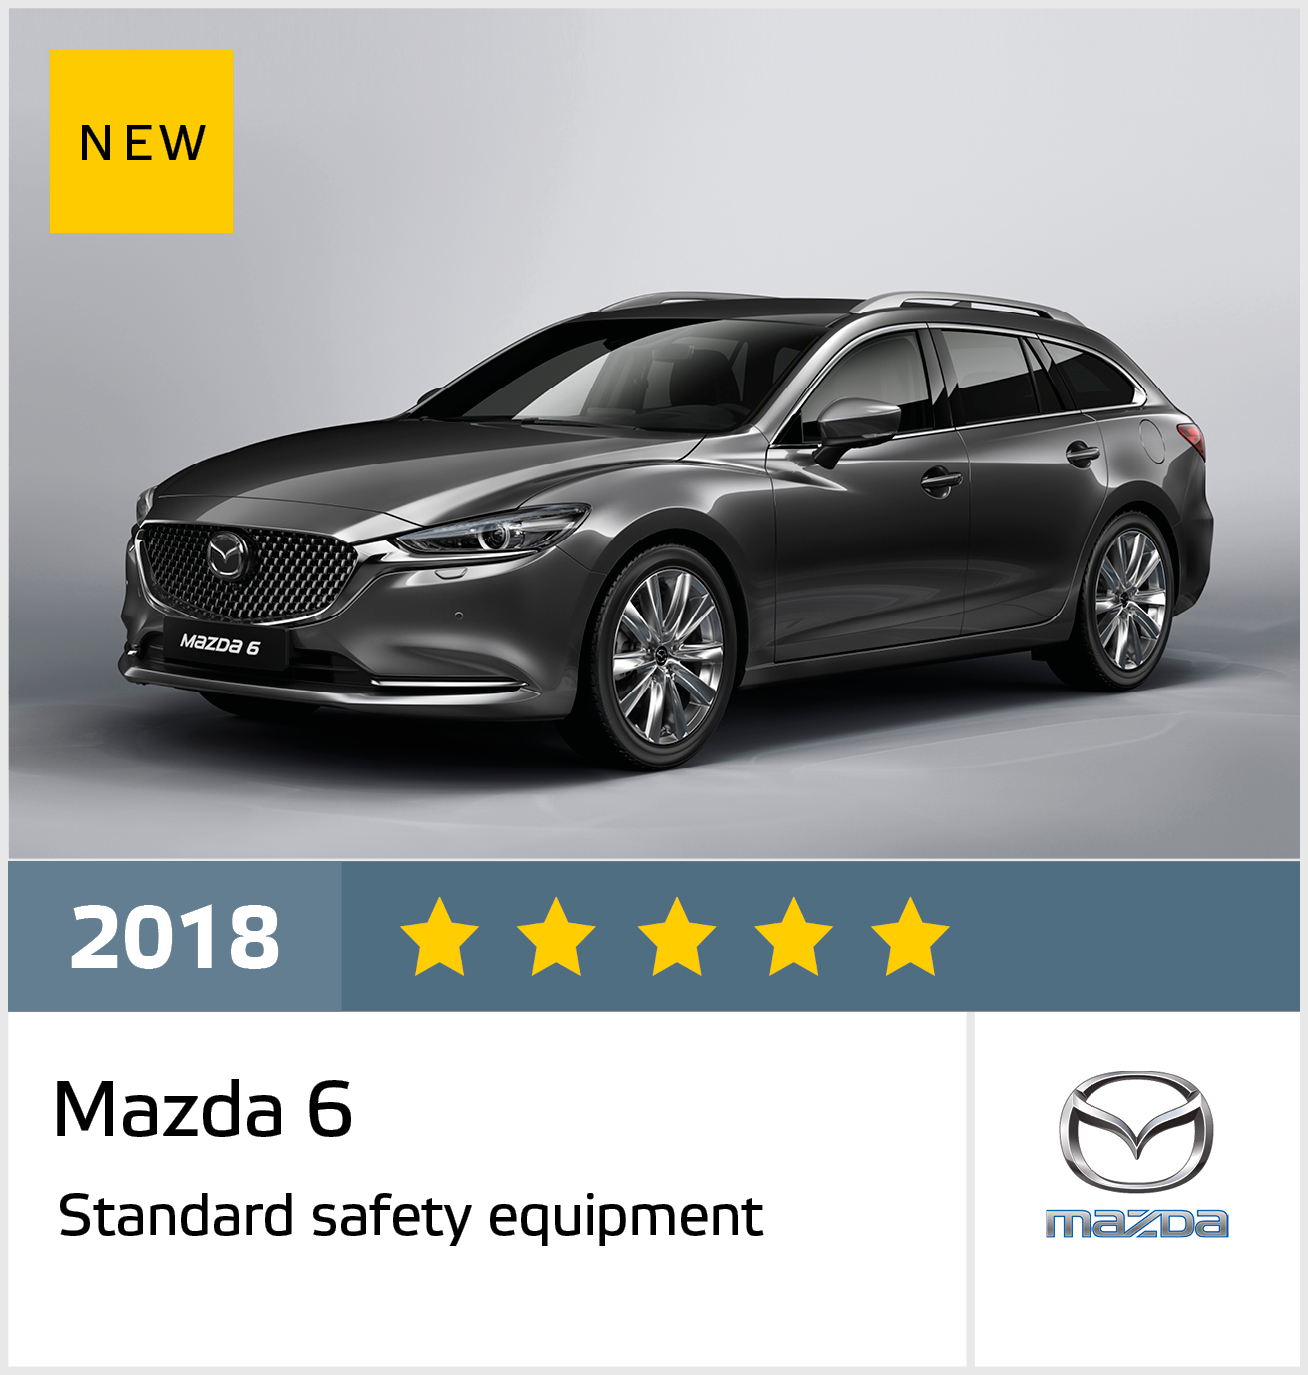 official mazda 6 safety rating wiring diagram also saab 9 5 as well 2016 mazda 6 touring on 2003 [ 1308 x 1375 Pixel ]